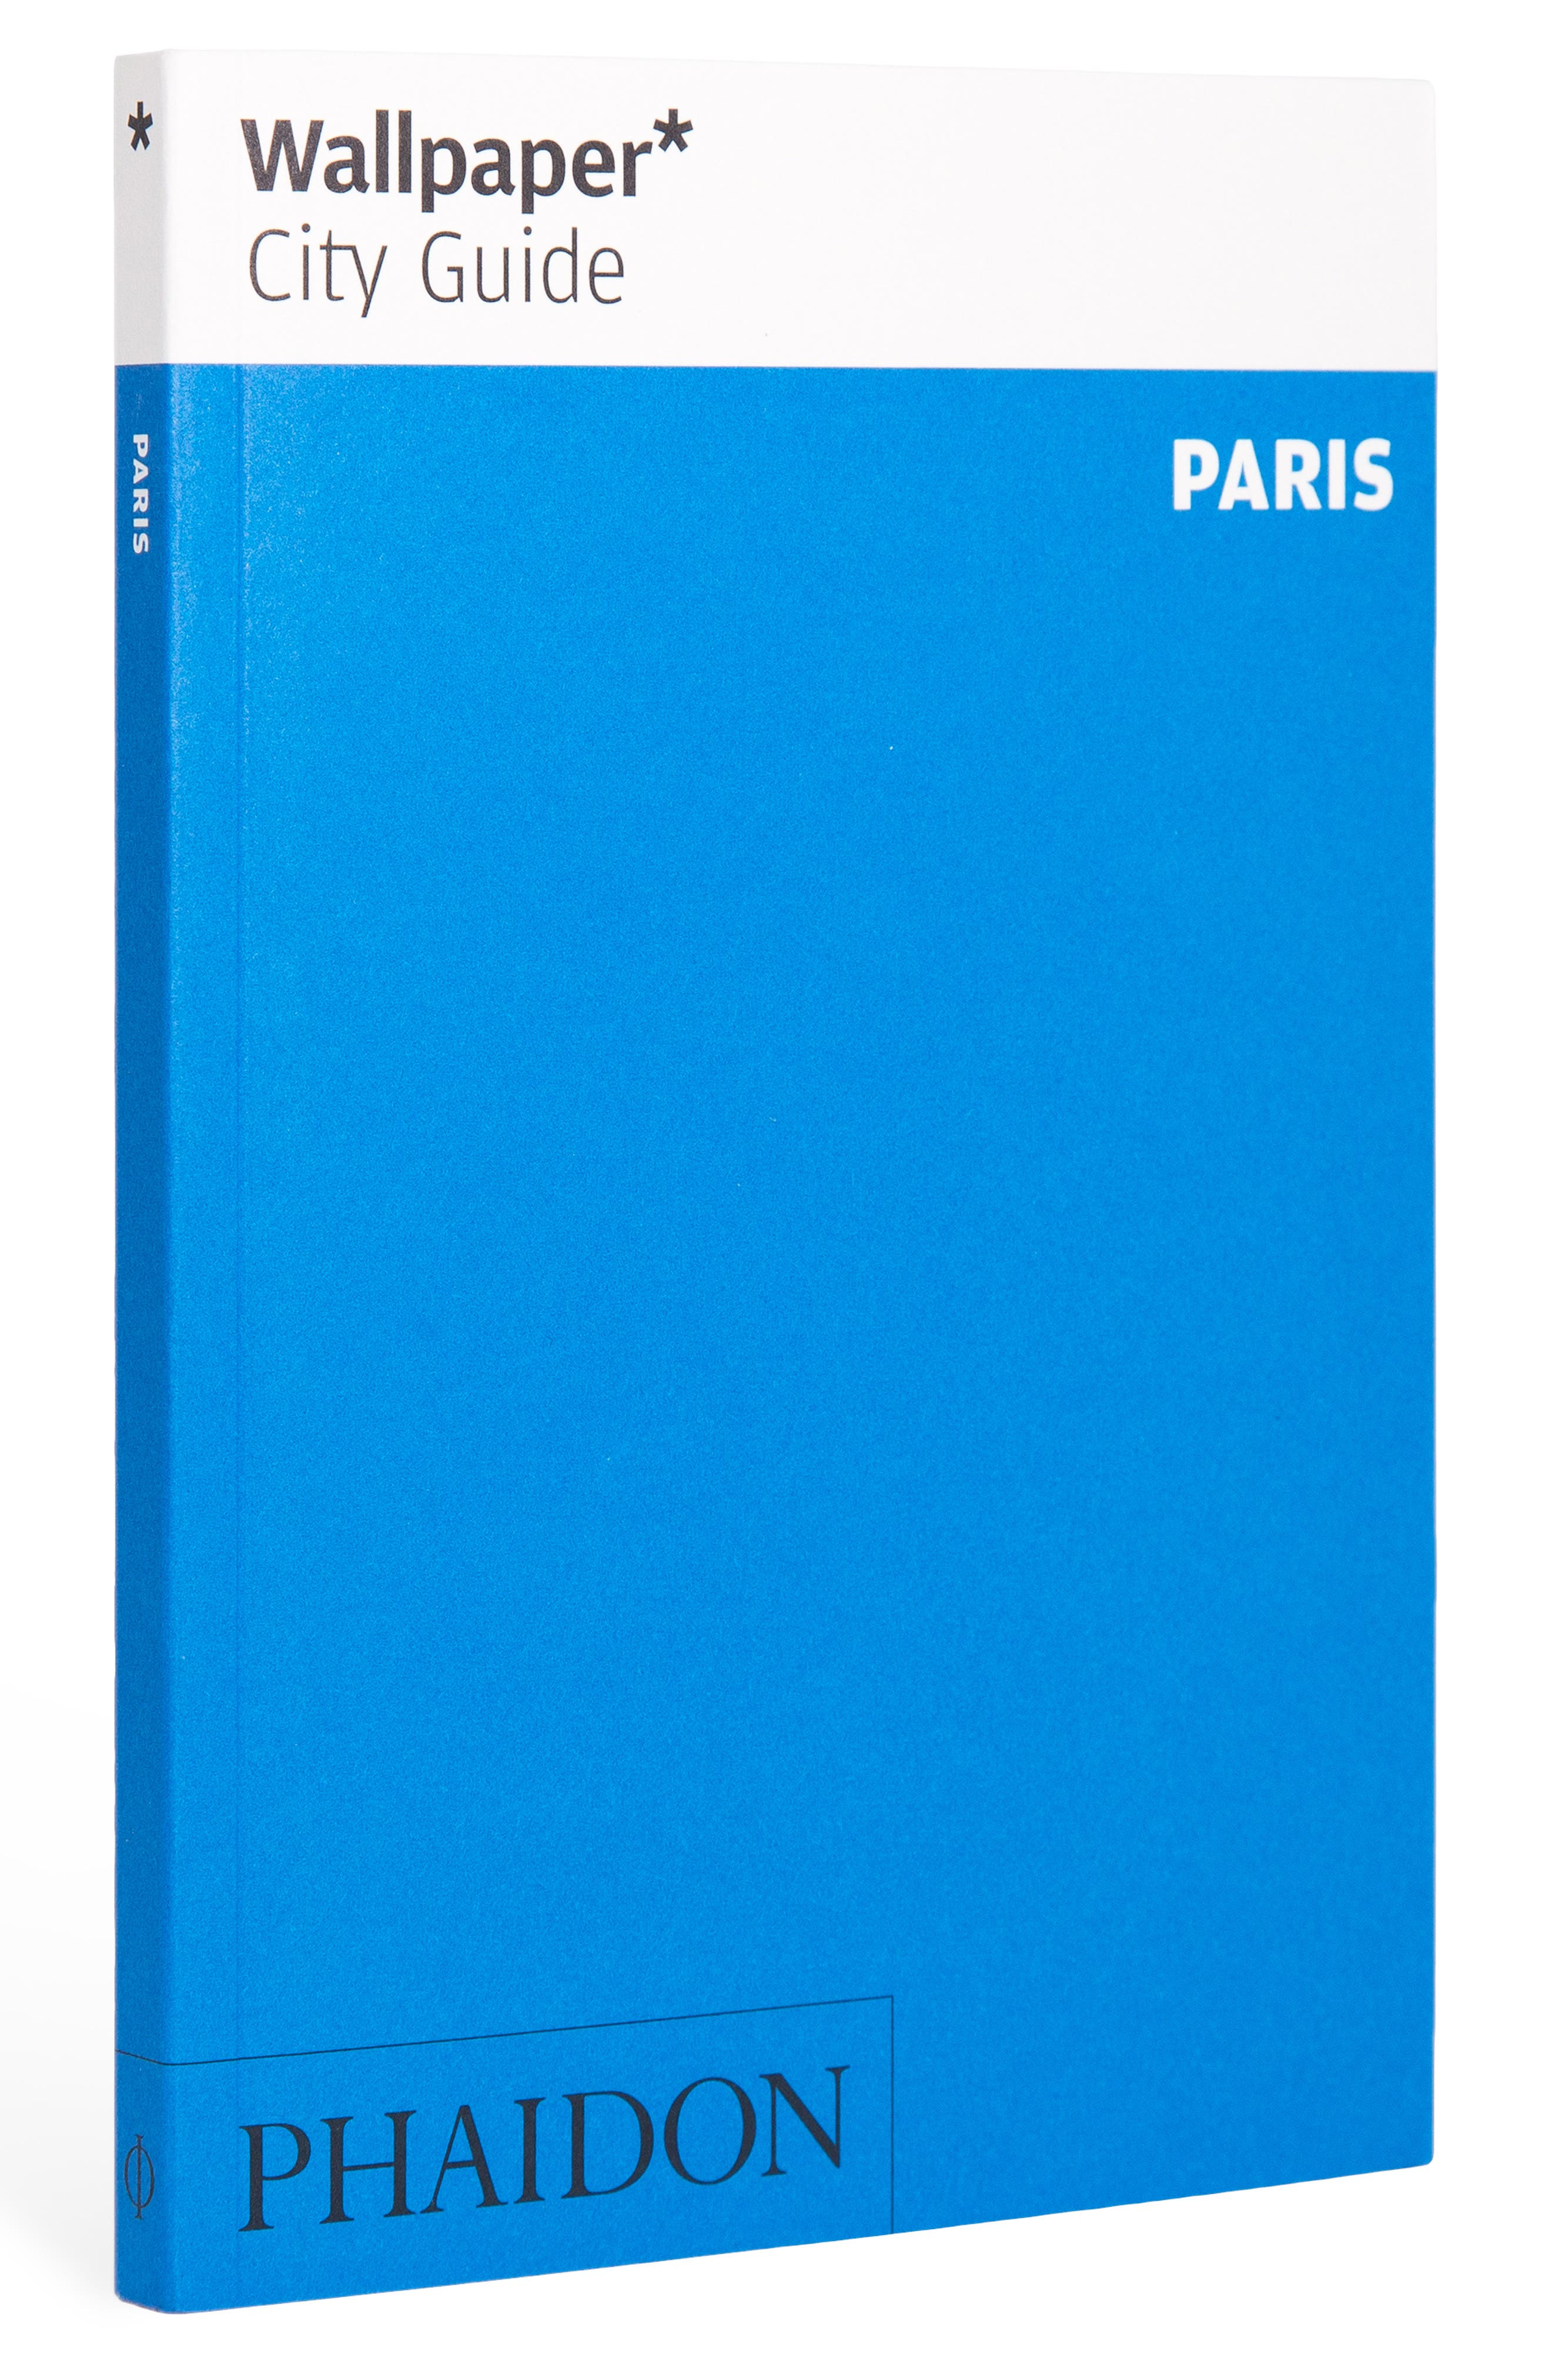 ISBN 9780714876498 product image for 'Wallpaper* City Guide Paris' Pocket Size Travel Book, Size One Size - Blue | upcitemdb.com